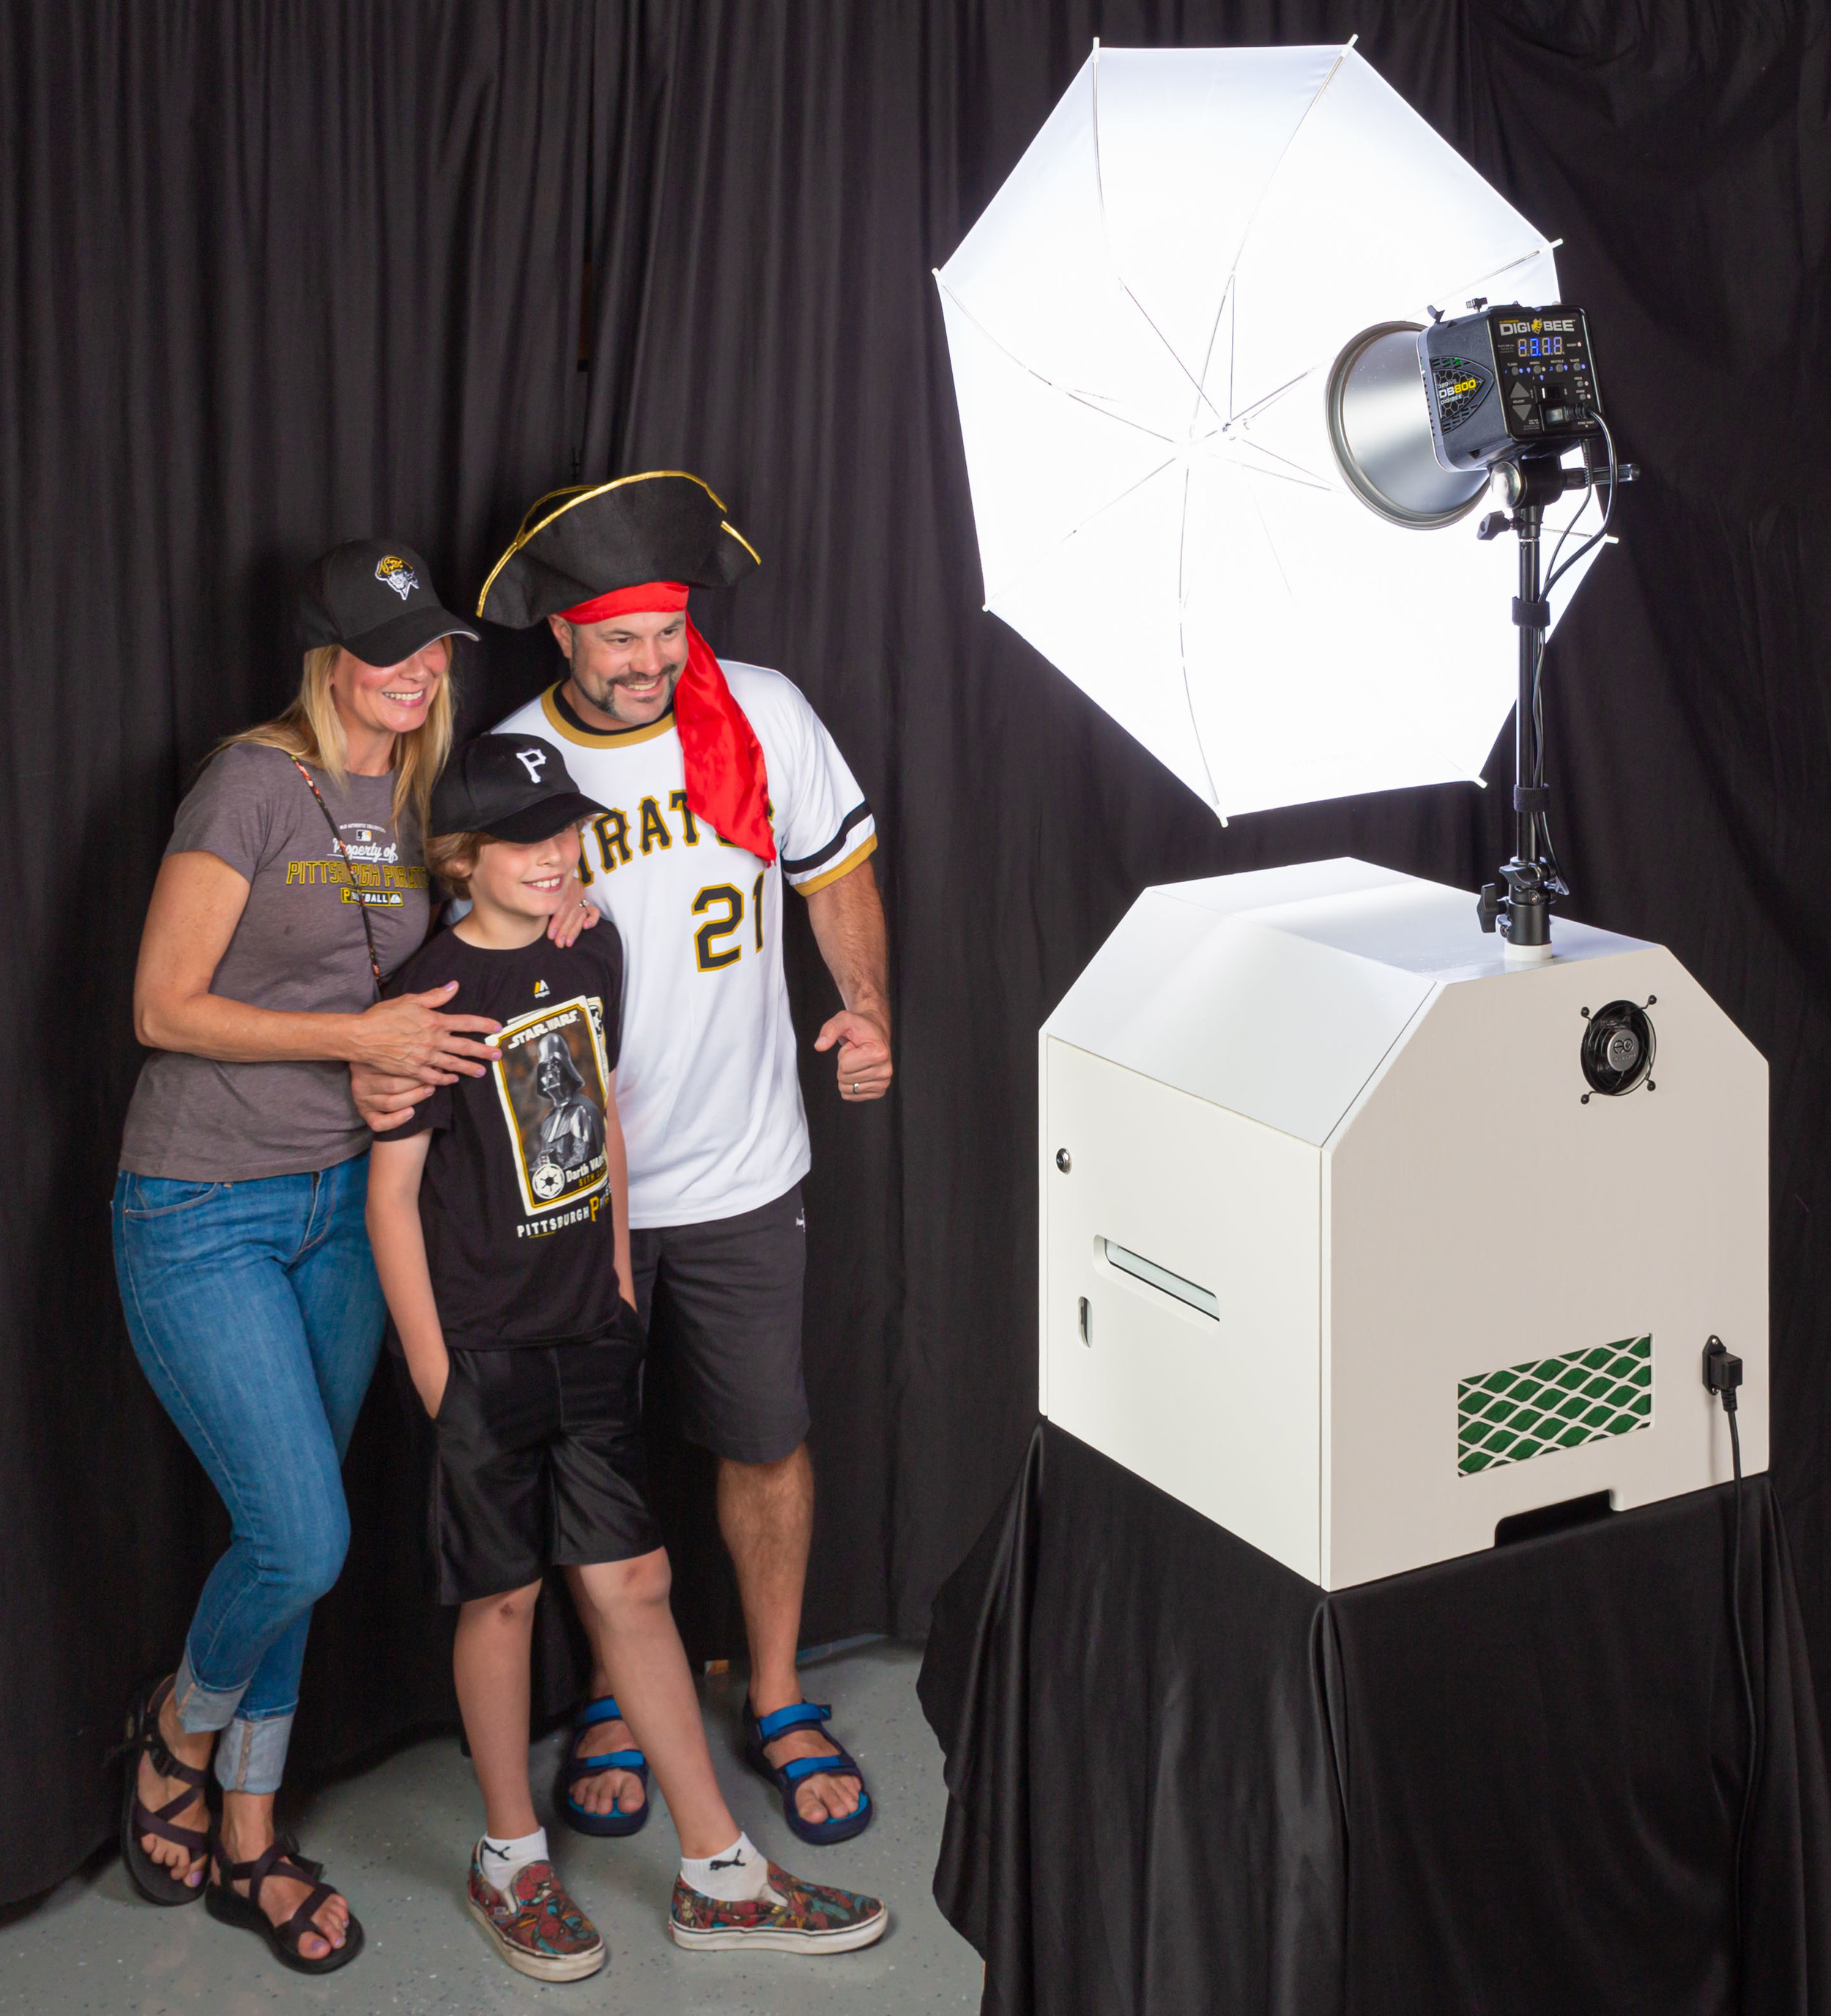 The PLAYHOUSE photo booth - We use an open-air photo booth which means the booth machine is separate from the backdrop. This gives more room for guests, allows more people in the photos, and attracts more attention!It also means you can choose the backdrop, decorations, and event banners for your photo backgrounds.